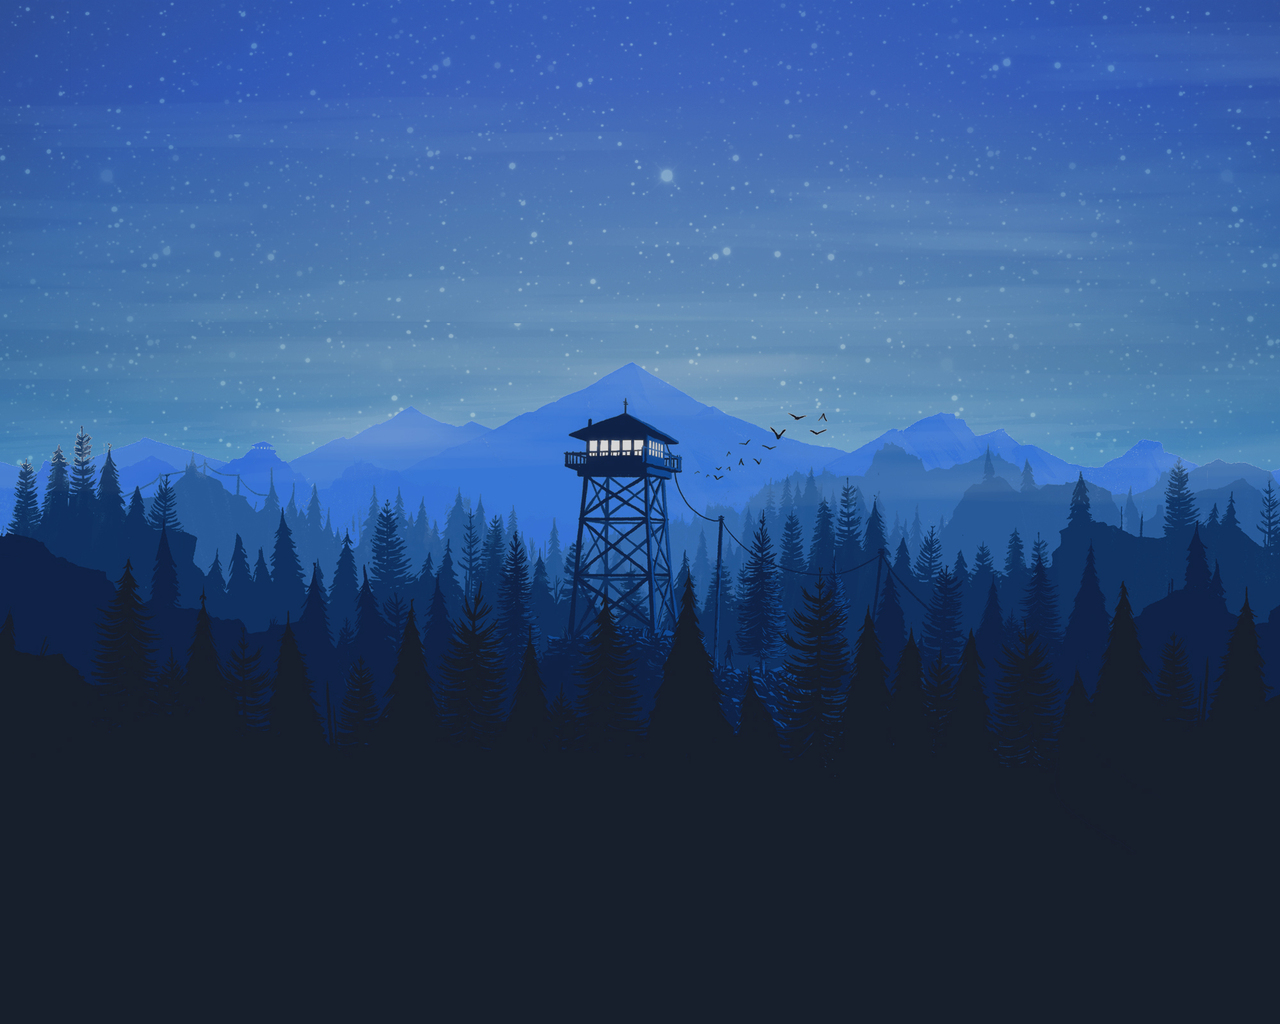 1280x1024 Firewatch 1280x1024 Resolution Hd 4k Wallpapers